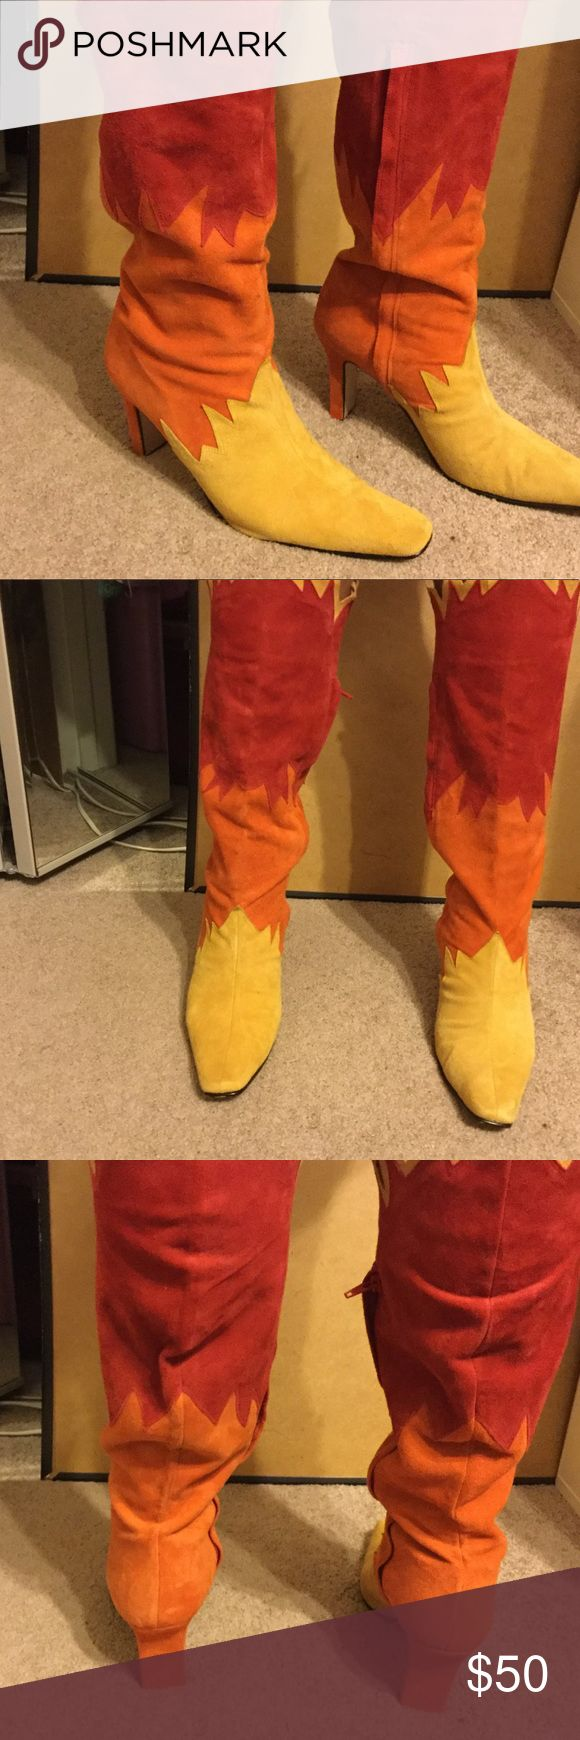 Woman's boots Multi coloured(red,yellow and orange) new boots never worn.  Size 11m. Made in china. Shoes Heeled Boots